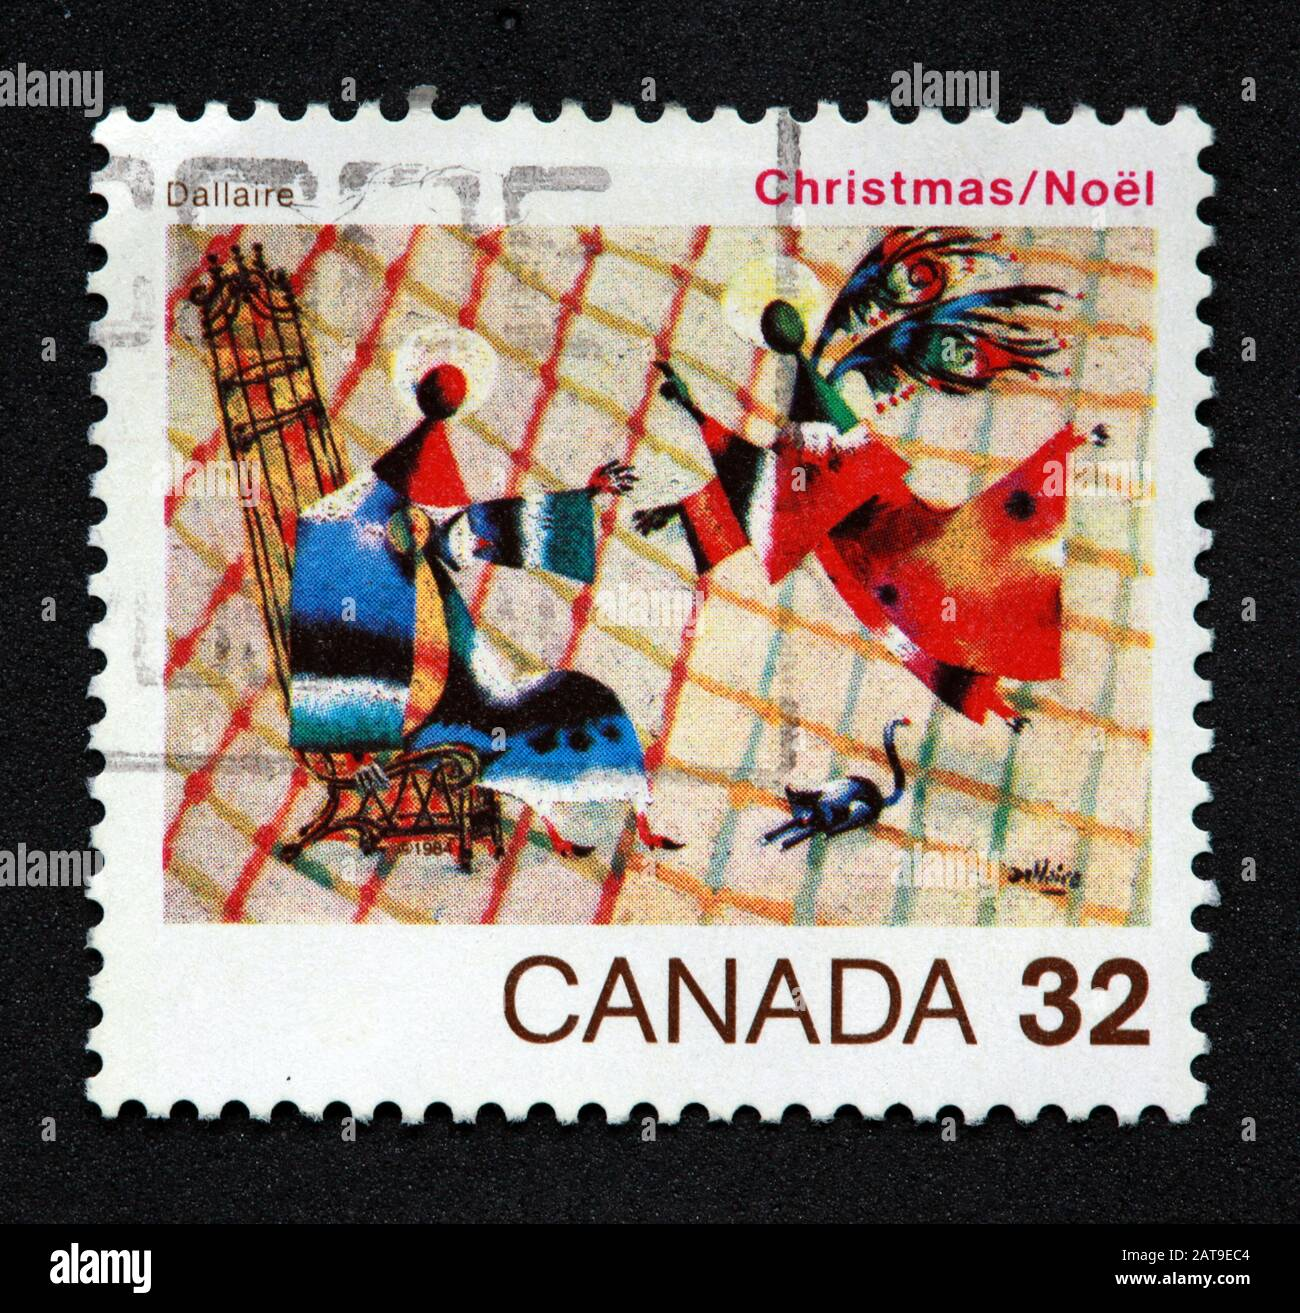 Hotpixuk,@Hotpixuk,GoTonySmith,stamp,postal,franked,frank,used stamps,used franked,used,franked stamp,from envelope,history,historic,old,poste,post office,communications,postage,sending letters,sending,parcels,32c,32cent,Christmas,Noel,Dallaire,angels,Canadian